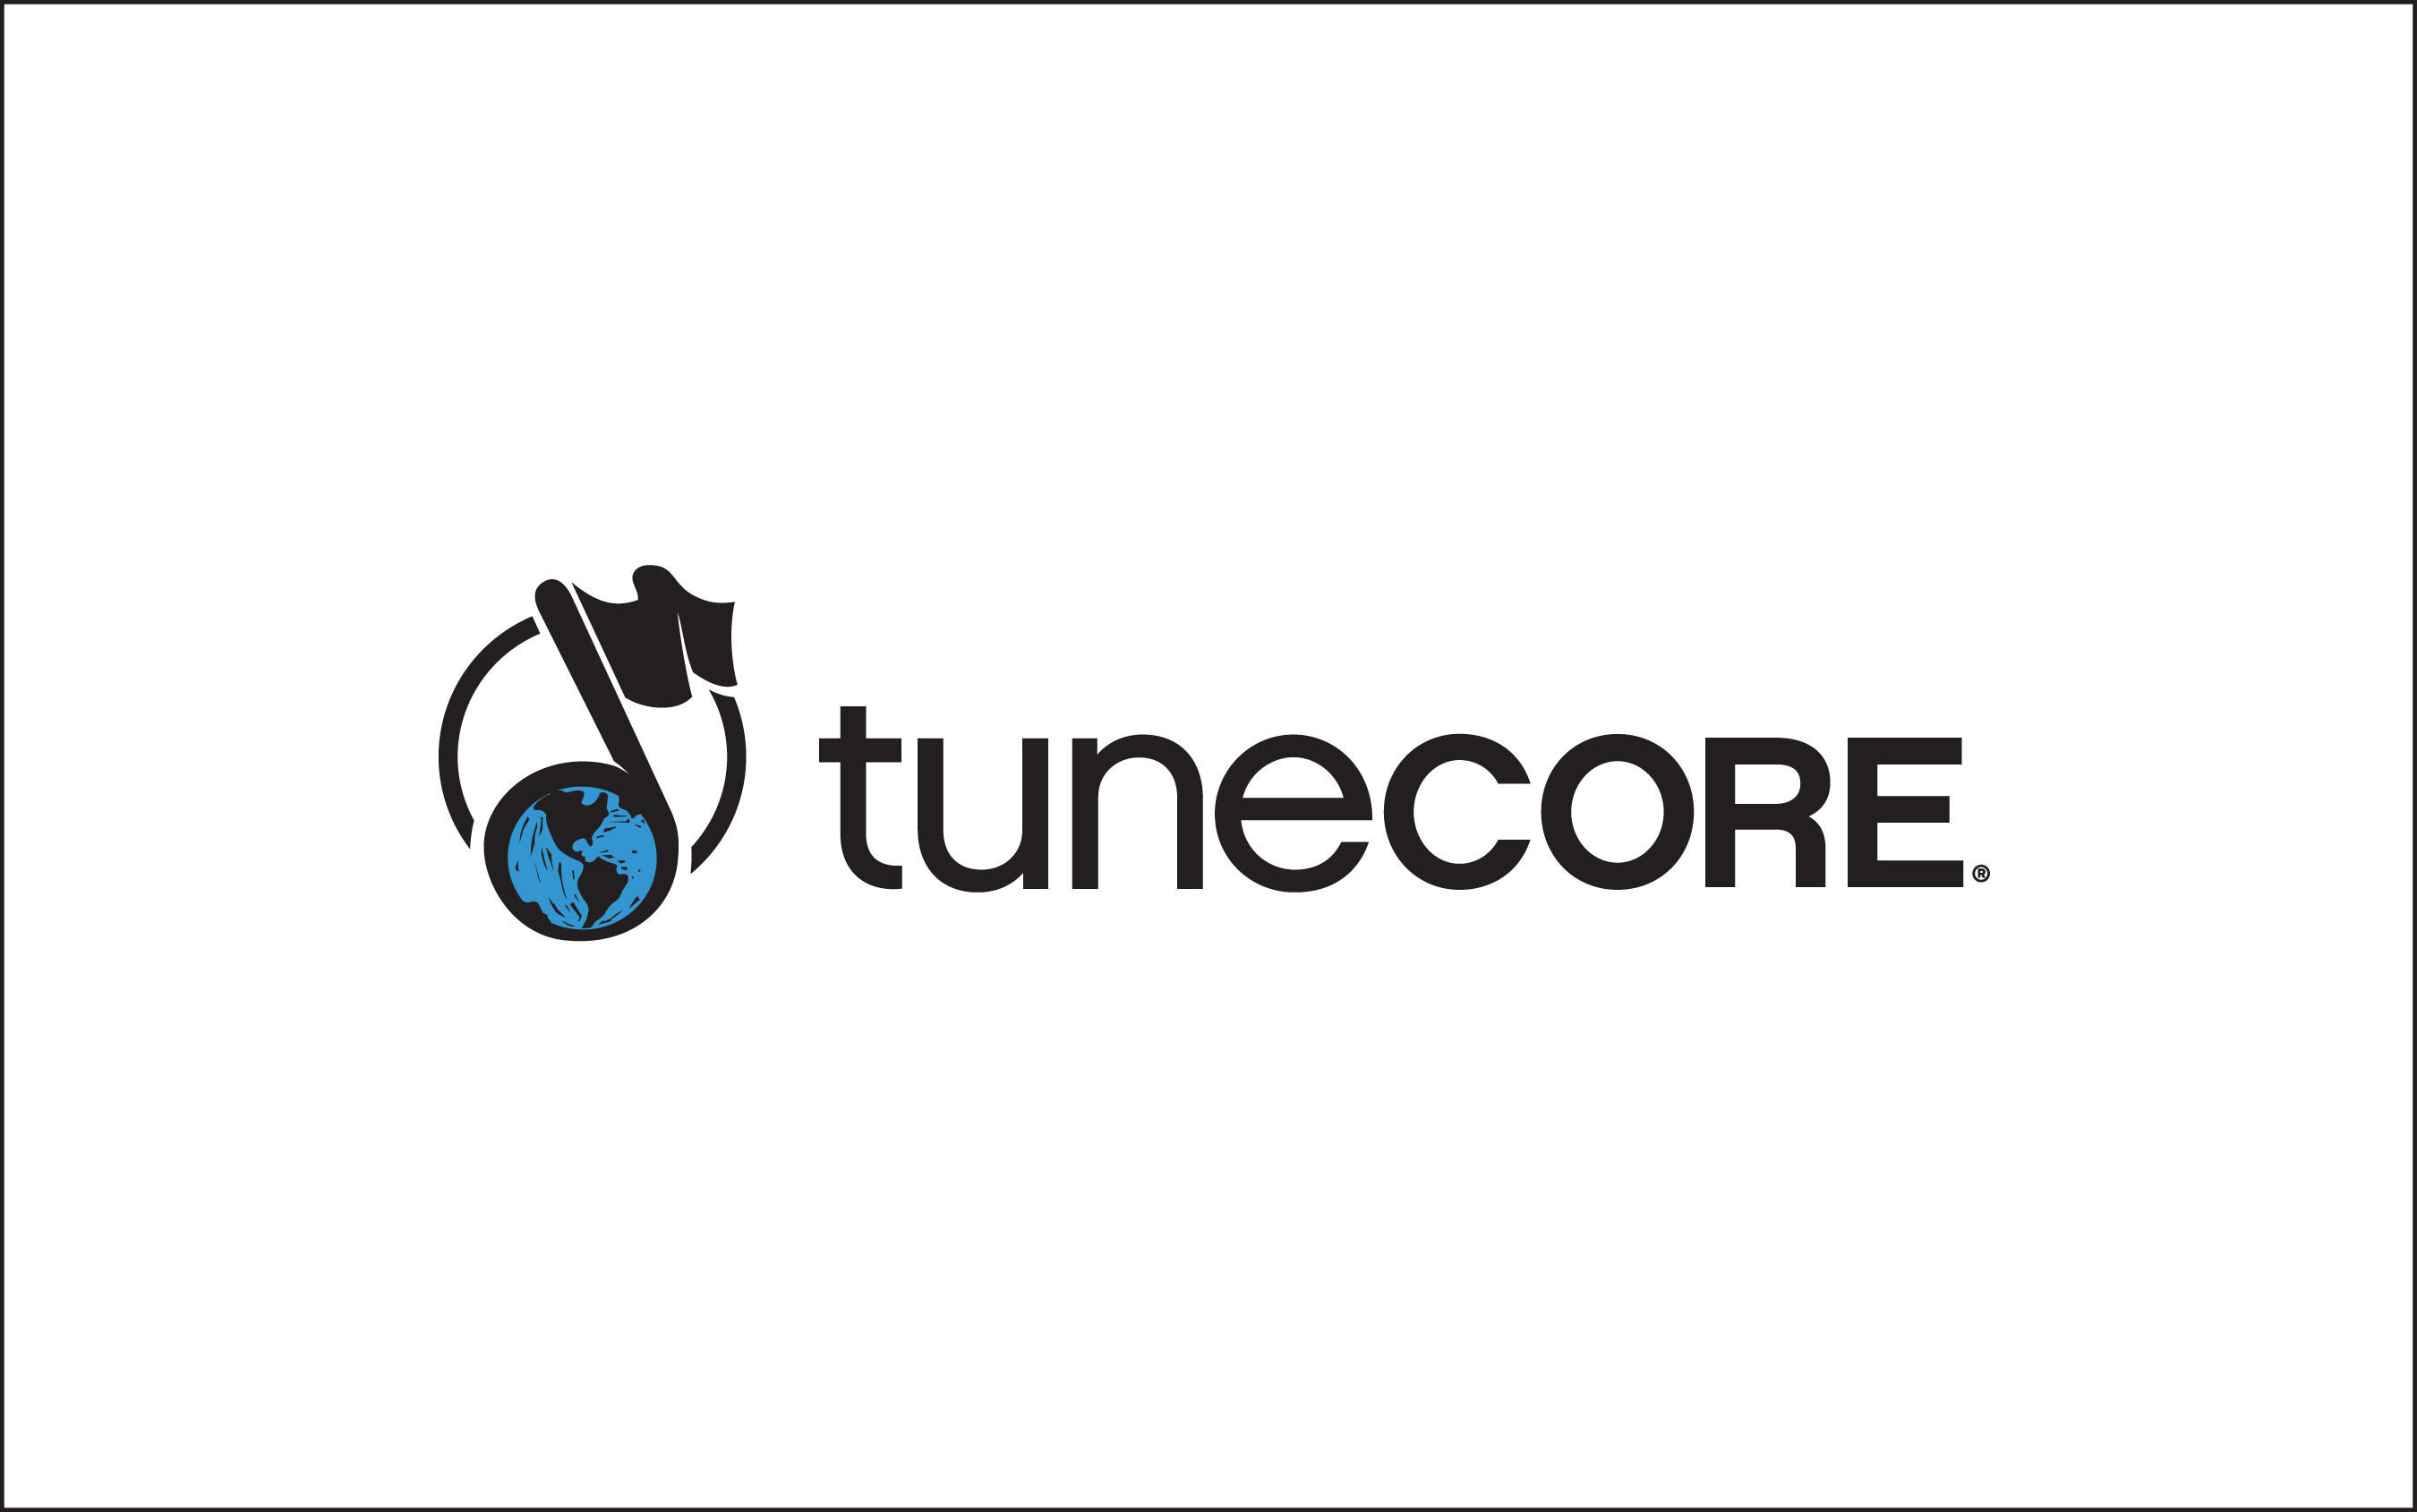 TuneCore brings more music to more people, while helping musicians and songwriters increase money-earning opportunities and take charge of their own careers. The company has one of the highest artist revenue-generating music catalogs in the world, earning TuneCore Artists $504 million on 12 billion streams and downloads since inception. TuneCore Music Distribution helps artists, labels and managers sell their music through iTunes, Amazon MP3, Spotify and other major download and streaming sites while retaining 100% of their sales revenue. TuneCore Music Publishing Administration assists songwriters by administering their compositions through licensing, registration and worldwide royalty collection, including YouTube monetization